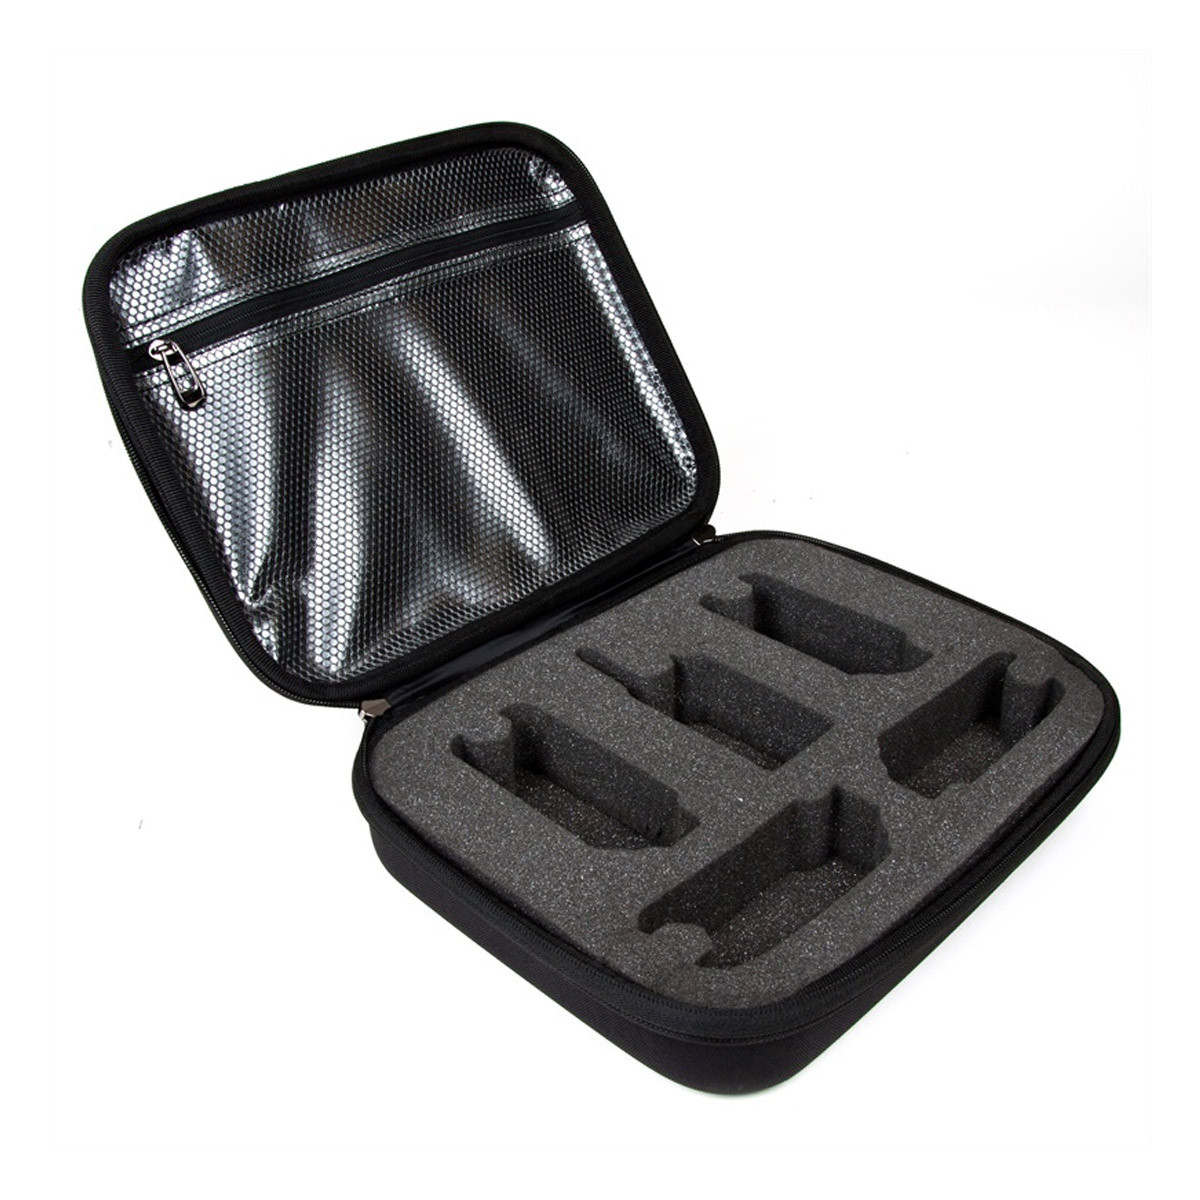 Delkim storage case